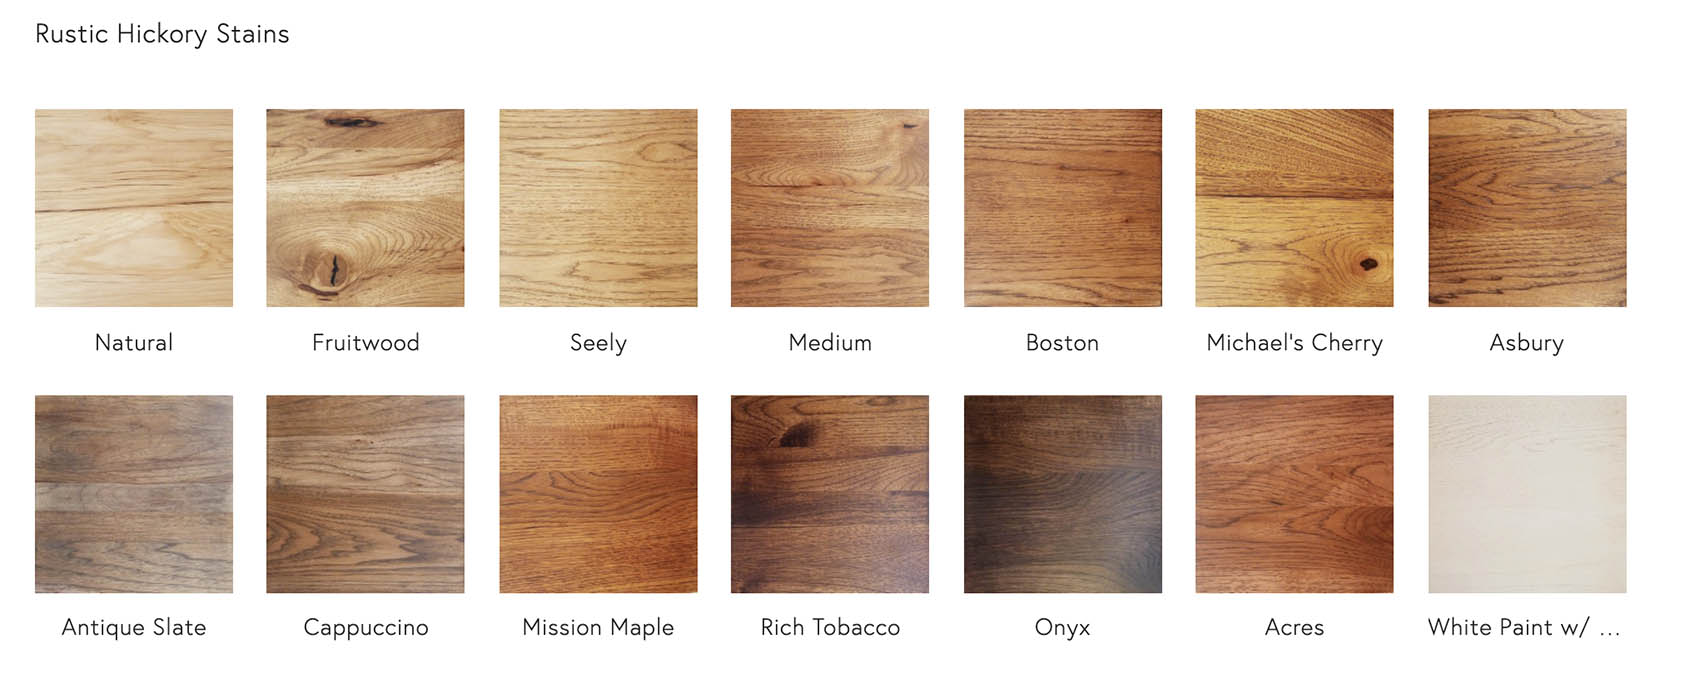 Rustic Hickory Stains